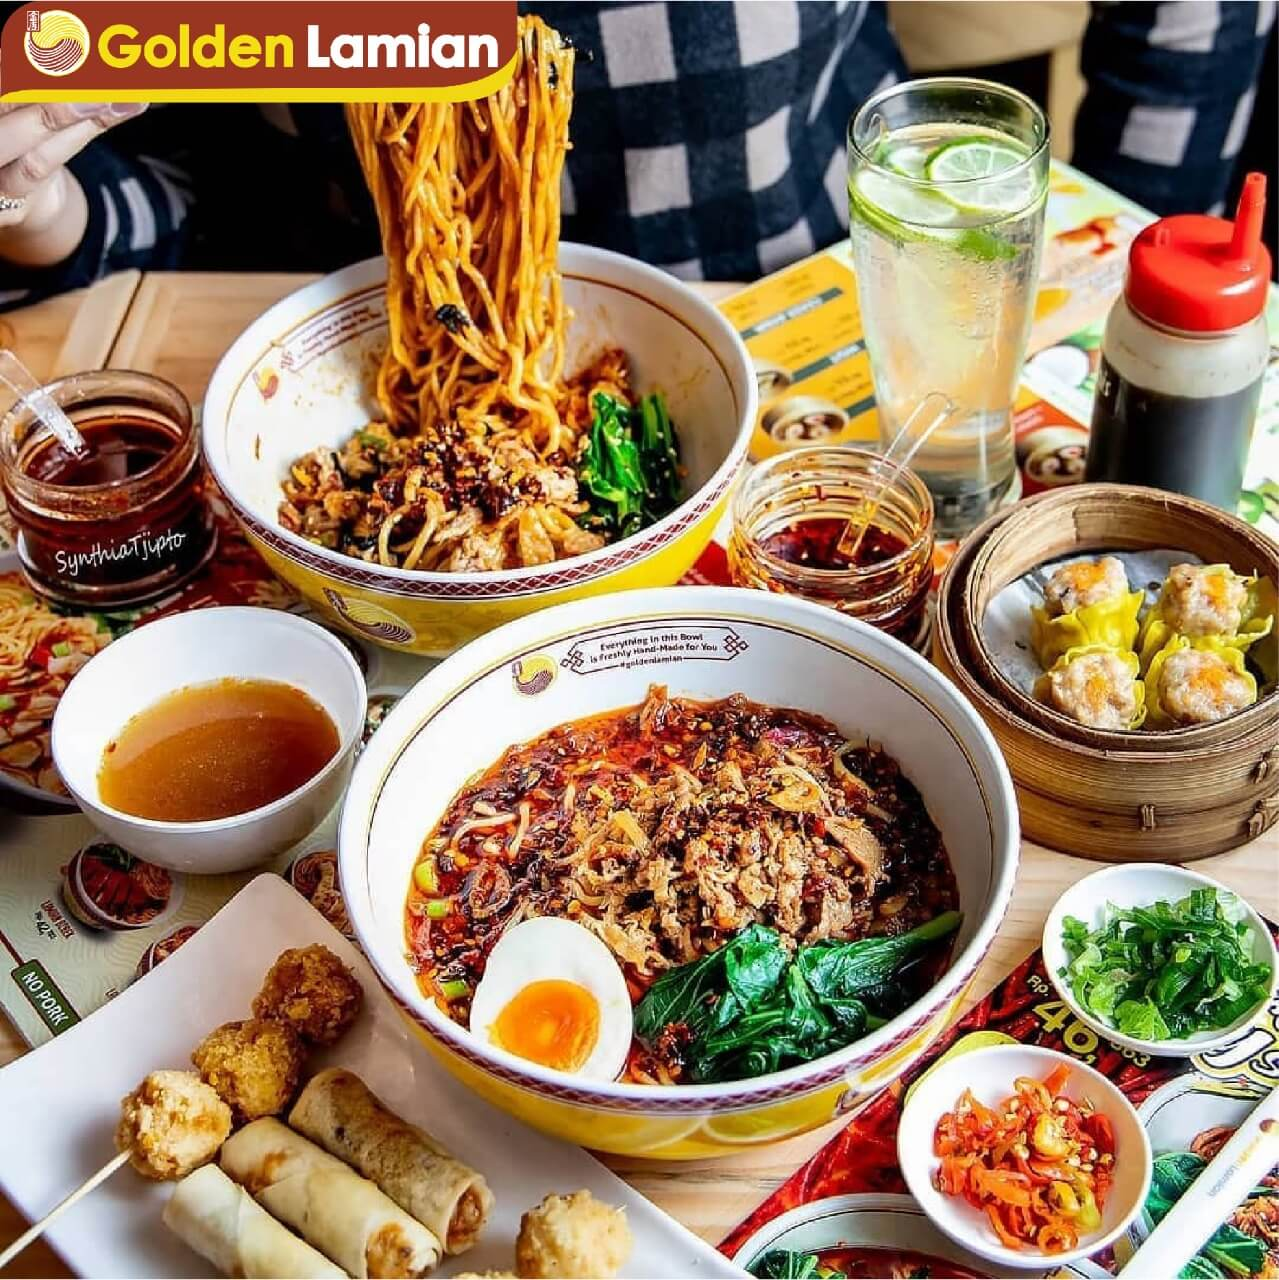 Golden Lamian Halal Chinese Noodles